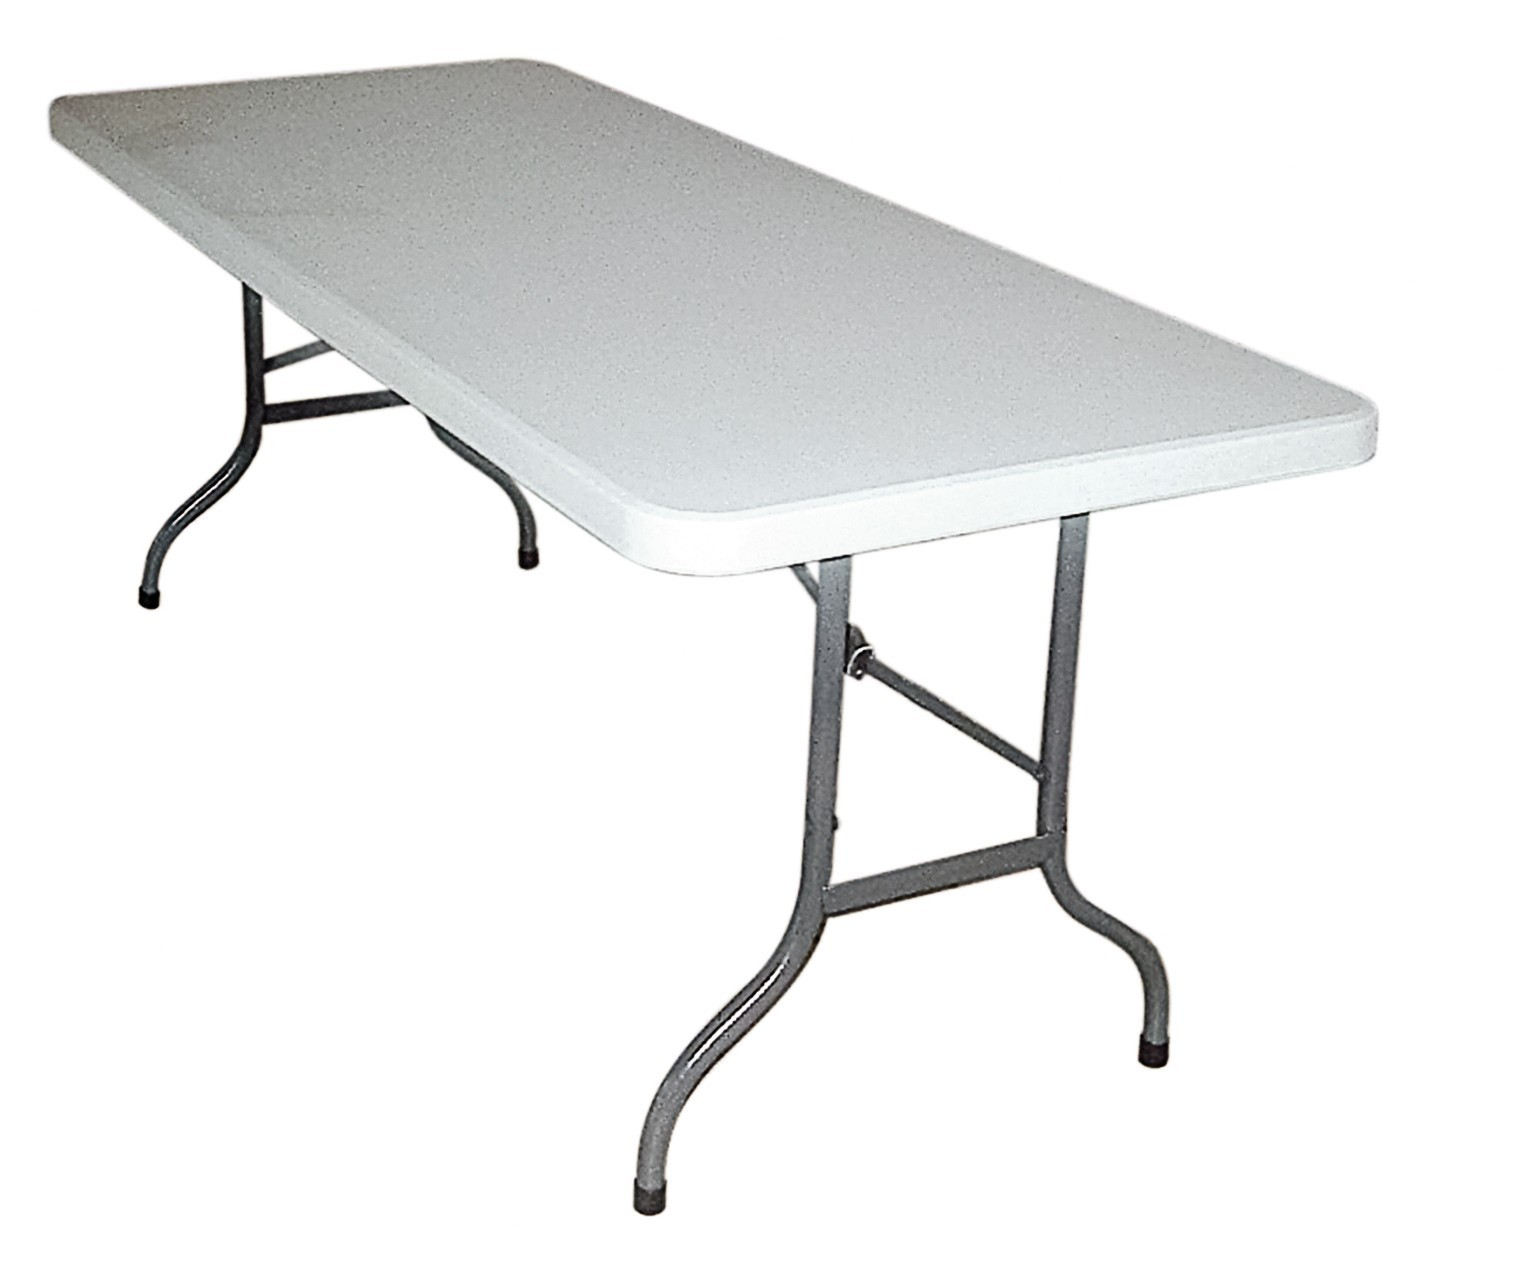 Belle table plastique enfant l 39 id e d 39 un tapis de bain - Table basse en plastique ...